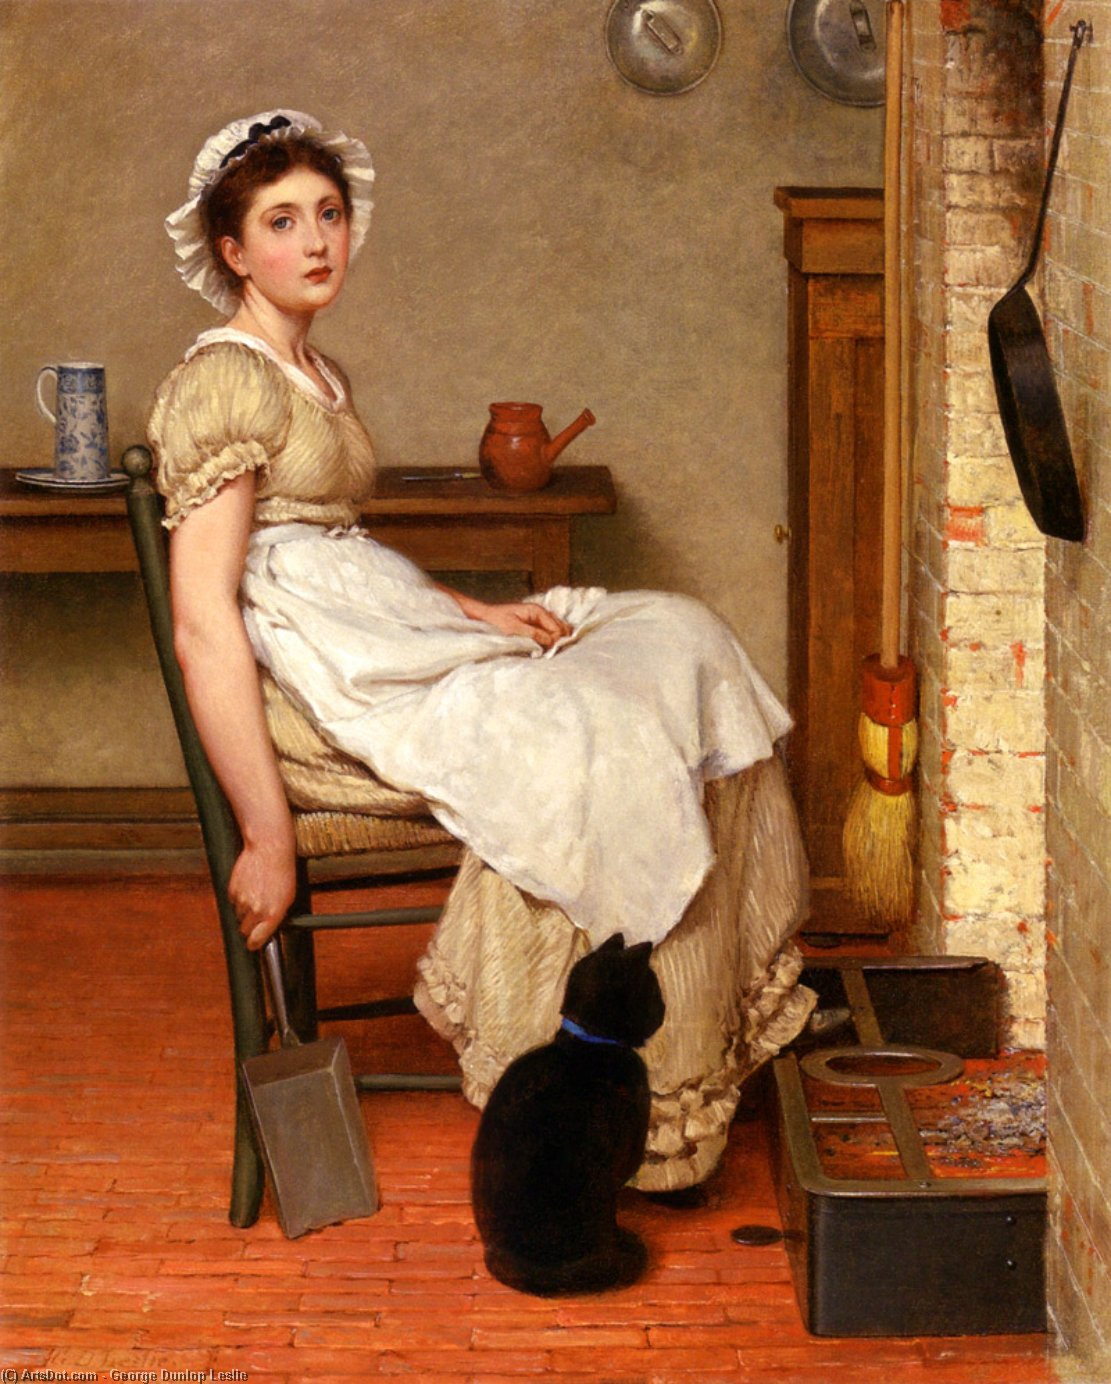 Her First Place by George Dunlop Leslie (1835-1921, United Kingdom)